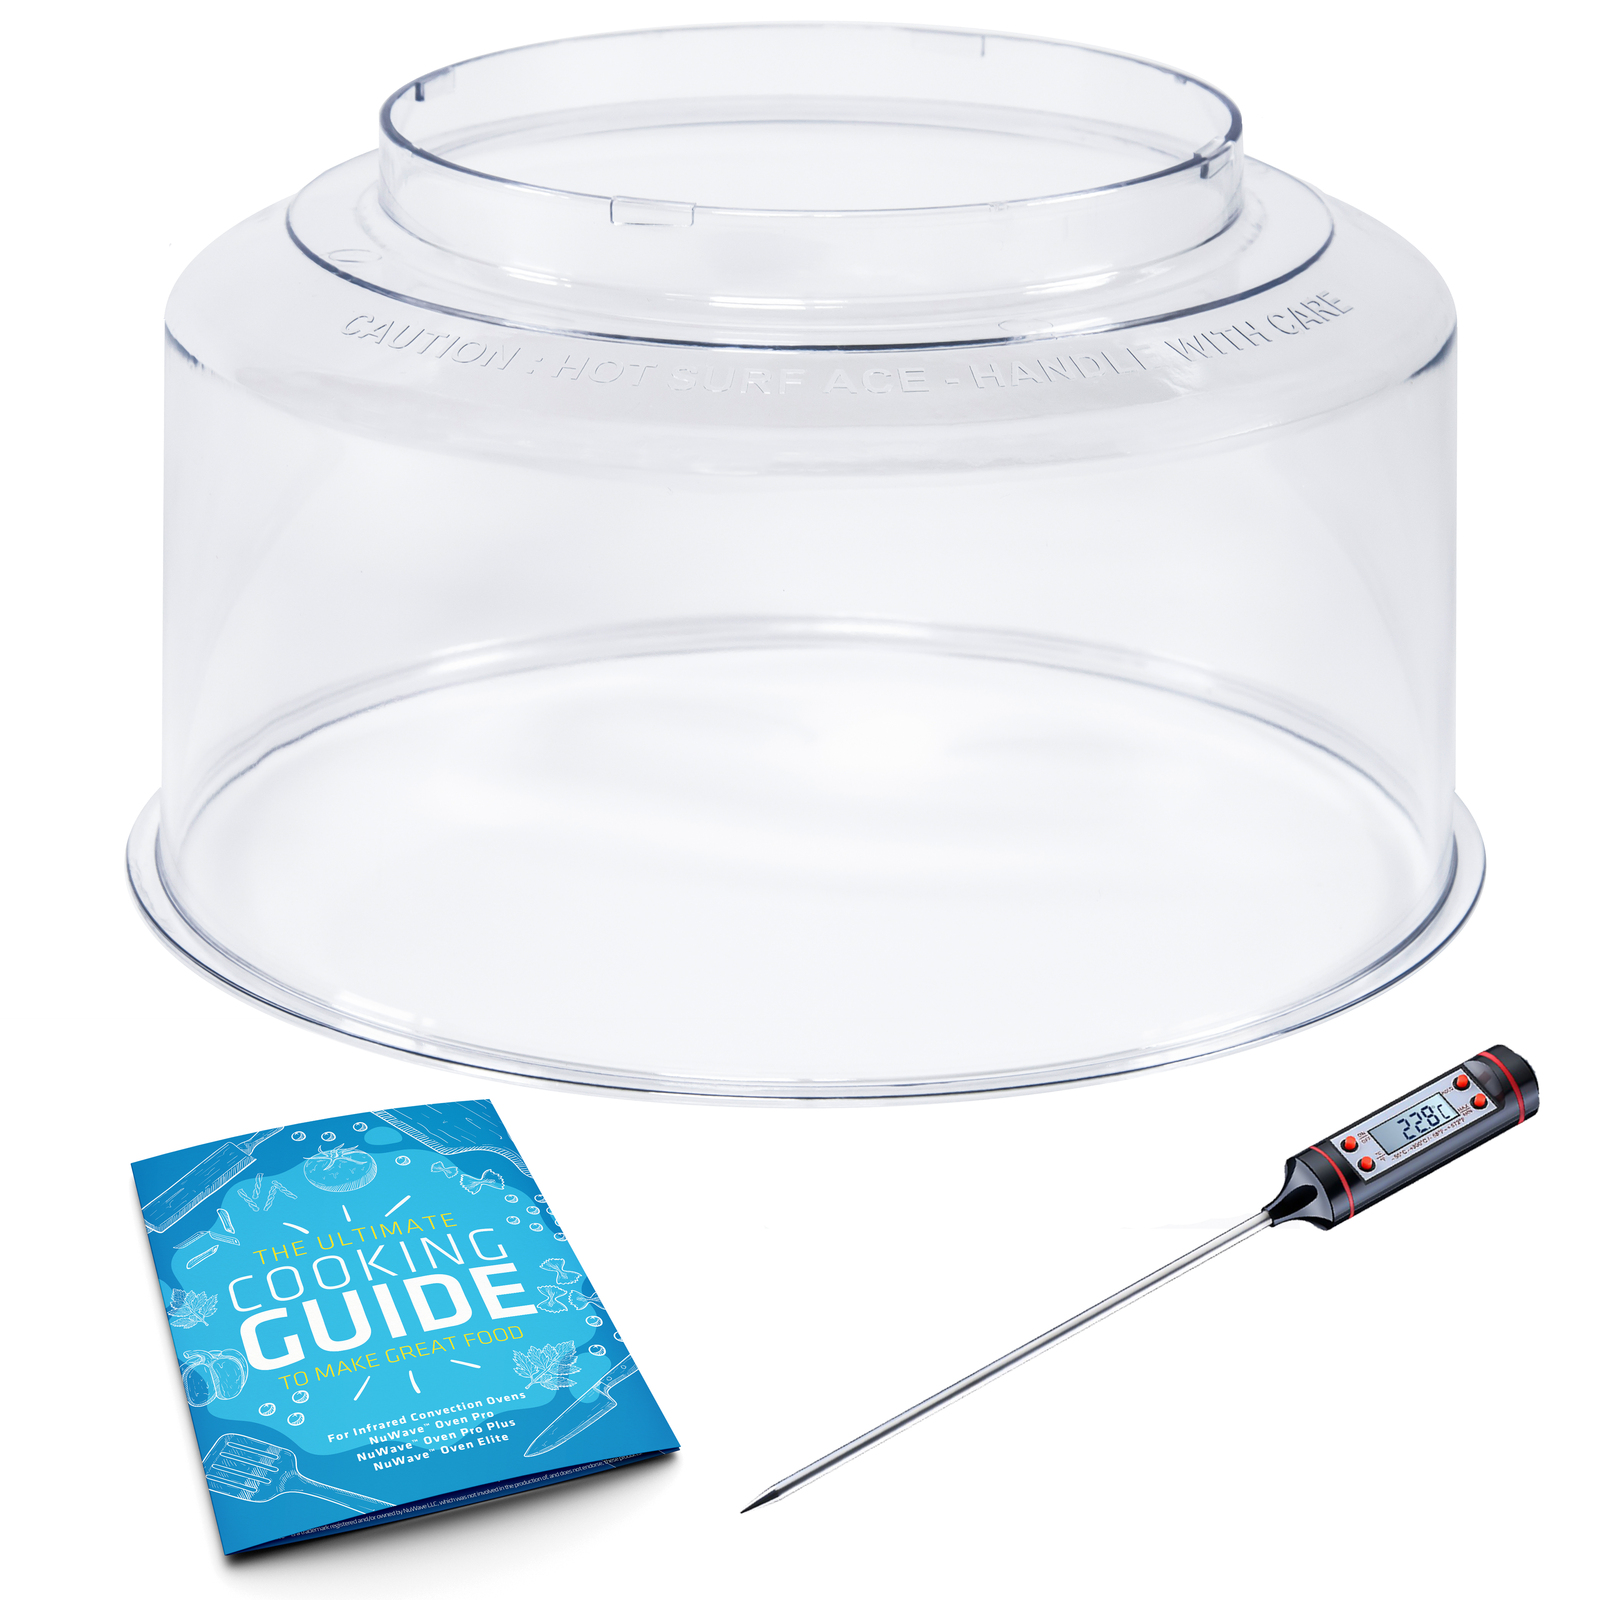 Nuwave Oven Dome Replacement For Pro Models Plastic